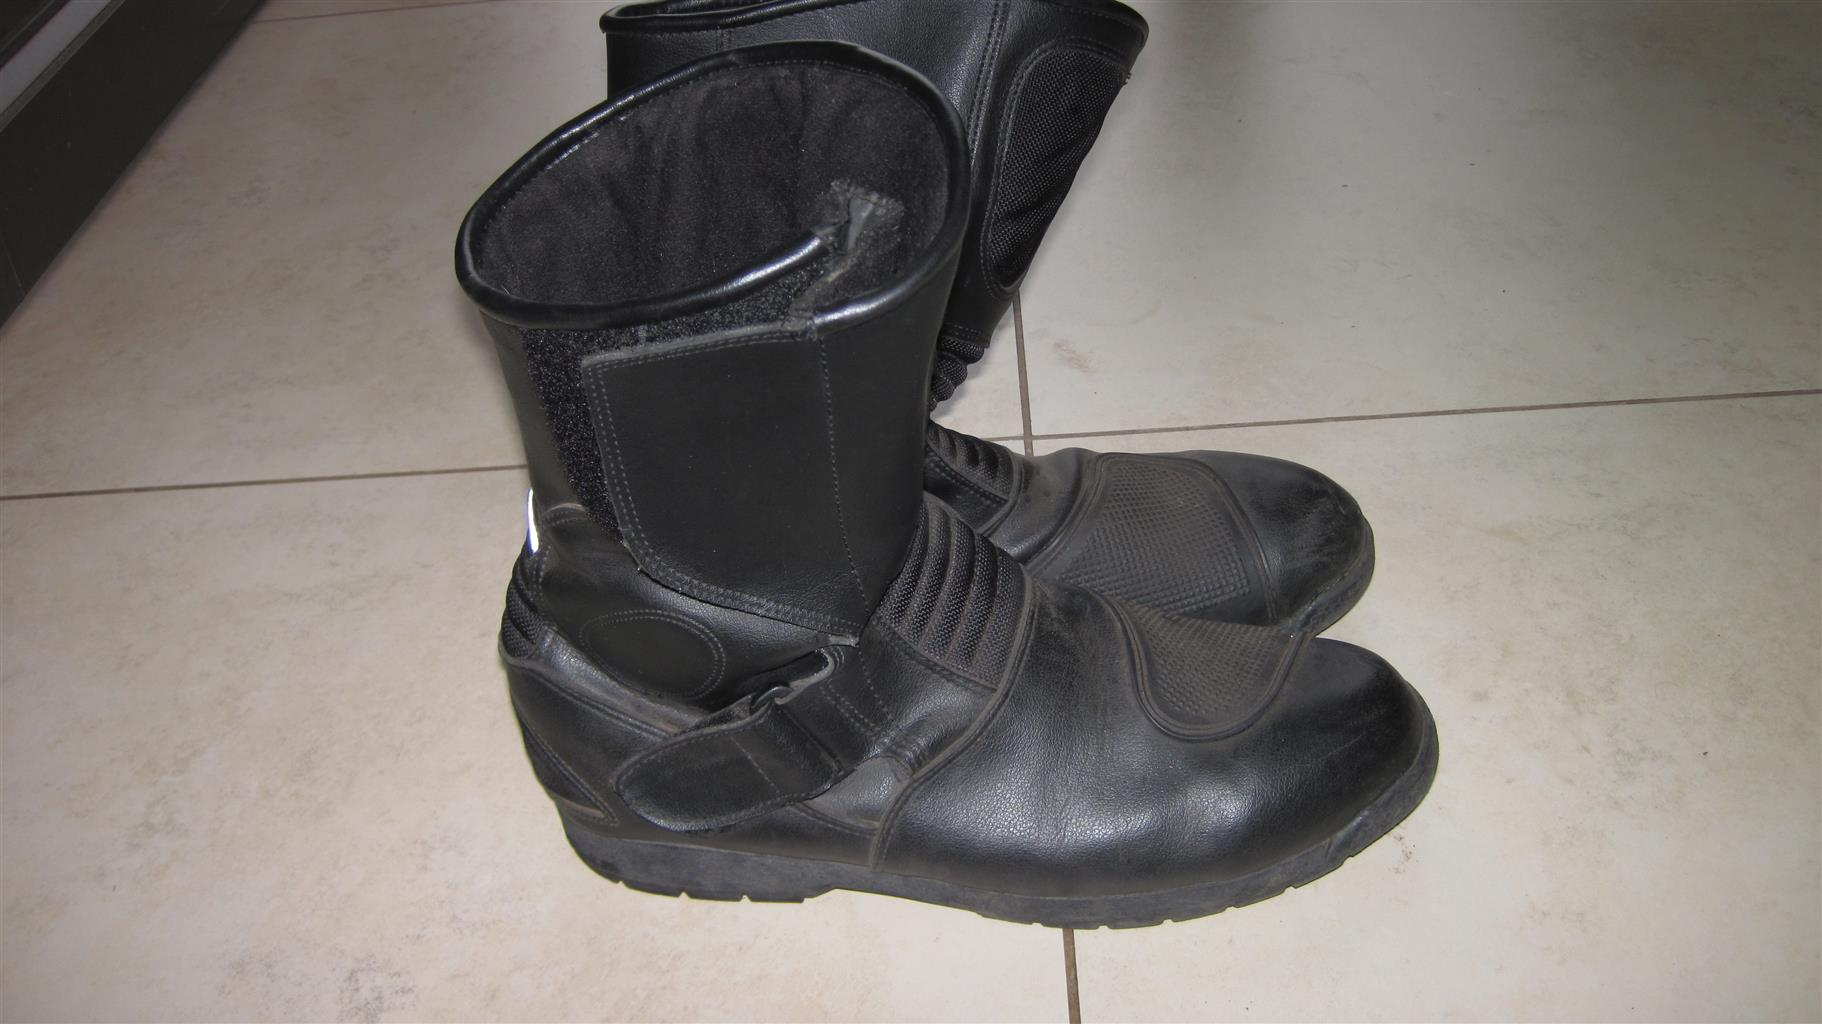 Bike jackets, boots, gloves and covers